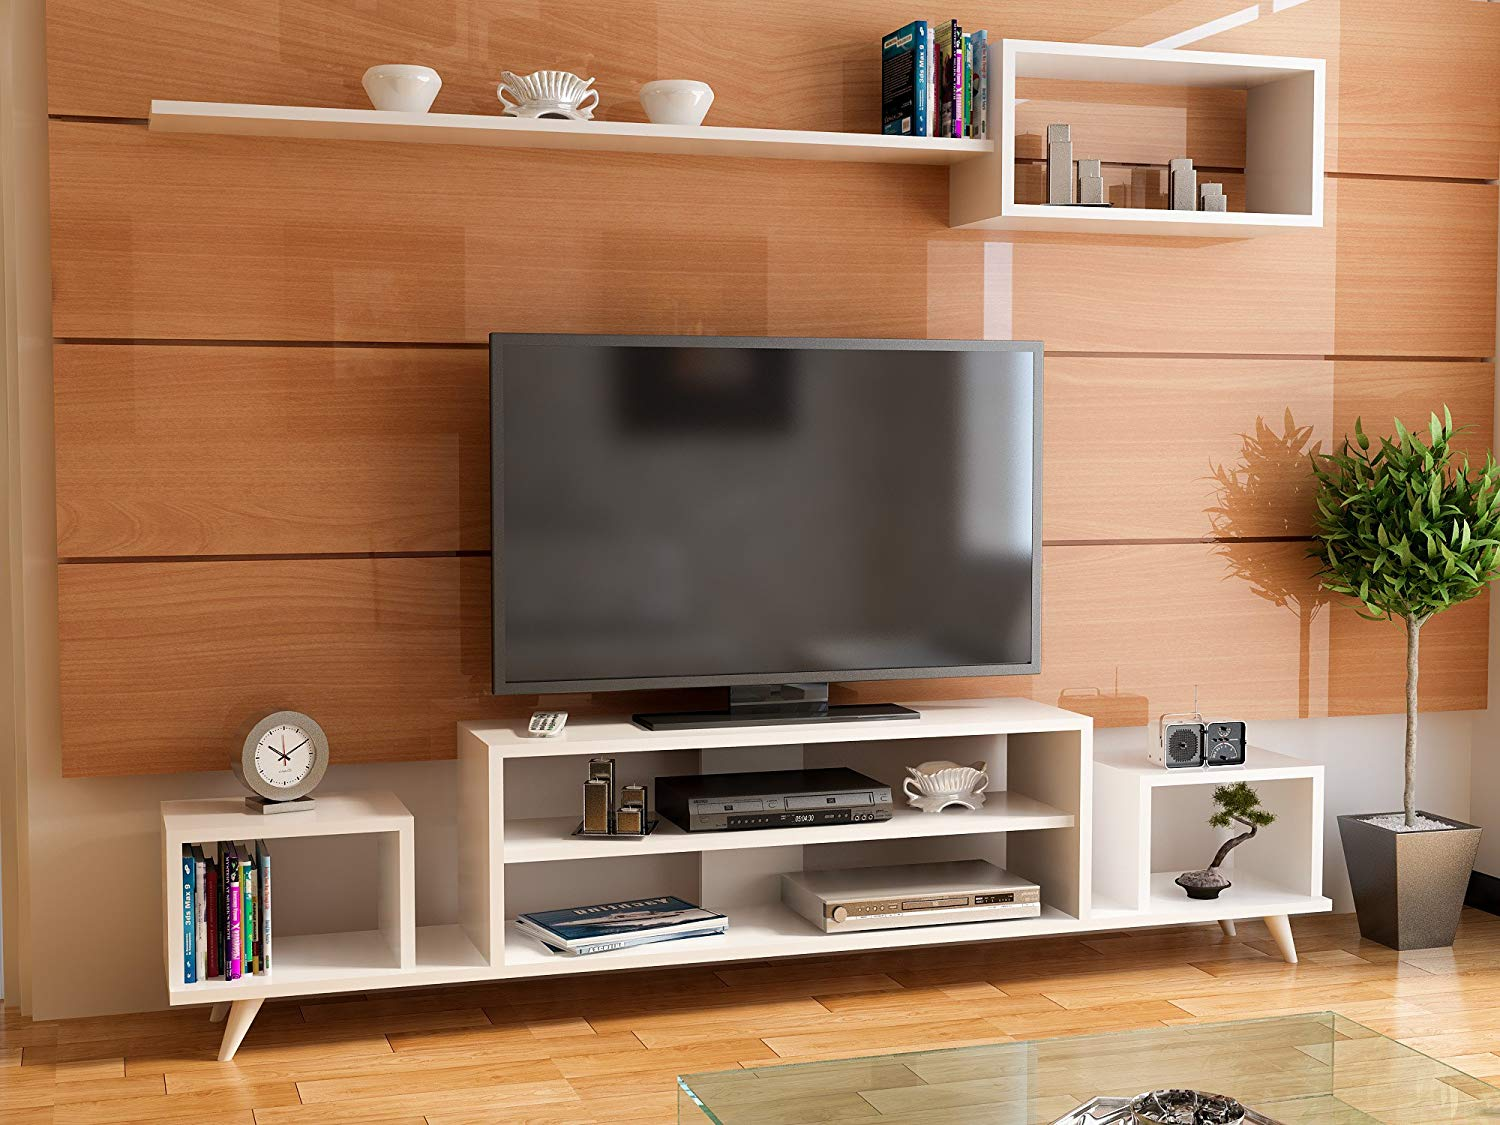 Tv Unit Cheap Lamodahome Tv Stand Unit White Coloured Tv Unit Stylish Design Simple Parted Stand Storage Multi Function Organize House Decor Desk Unit Furniture For